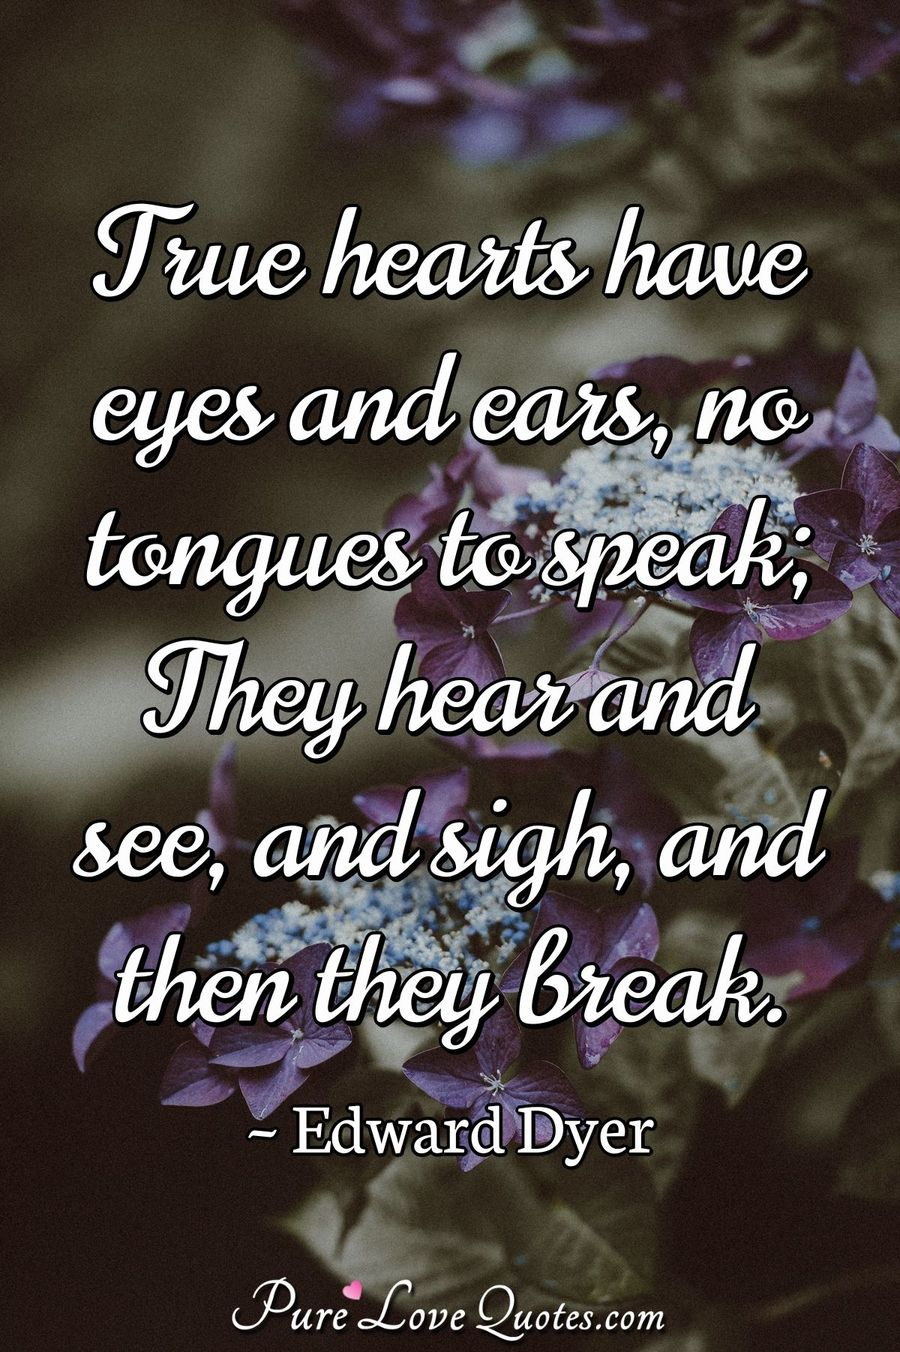 True hearts have eyes and ears, no tongues to speak; They hear and see, and sigh, and then they break. - Edward Dyer